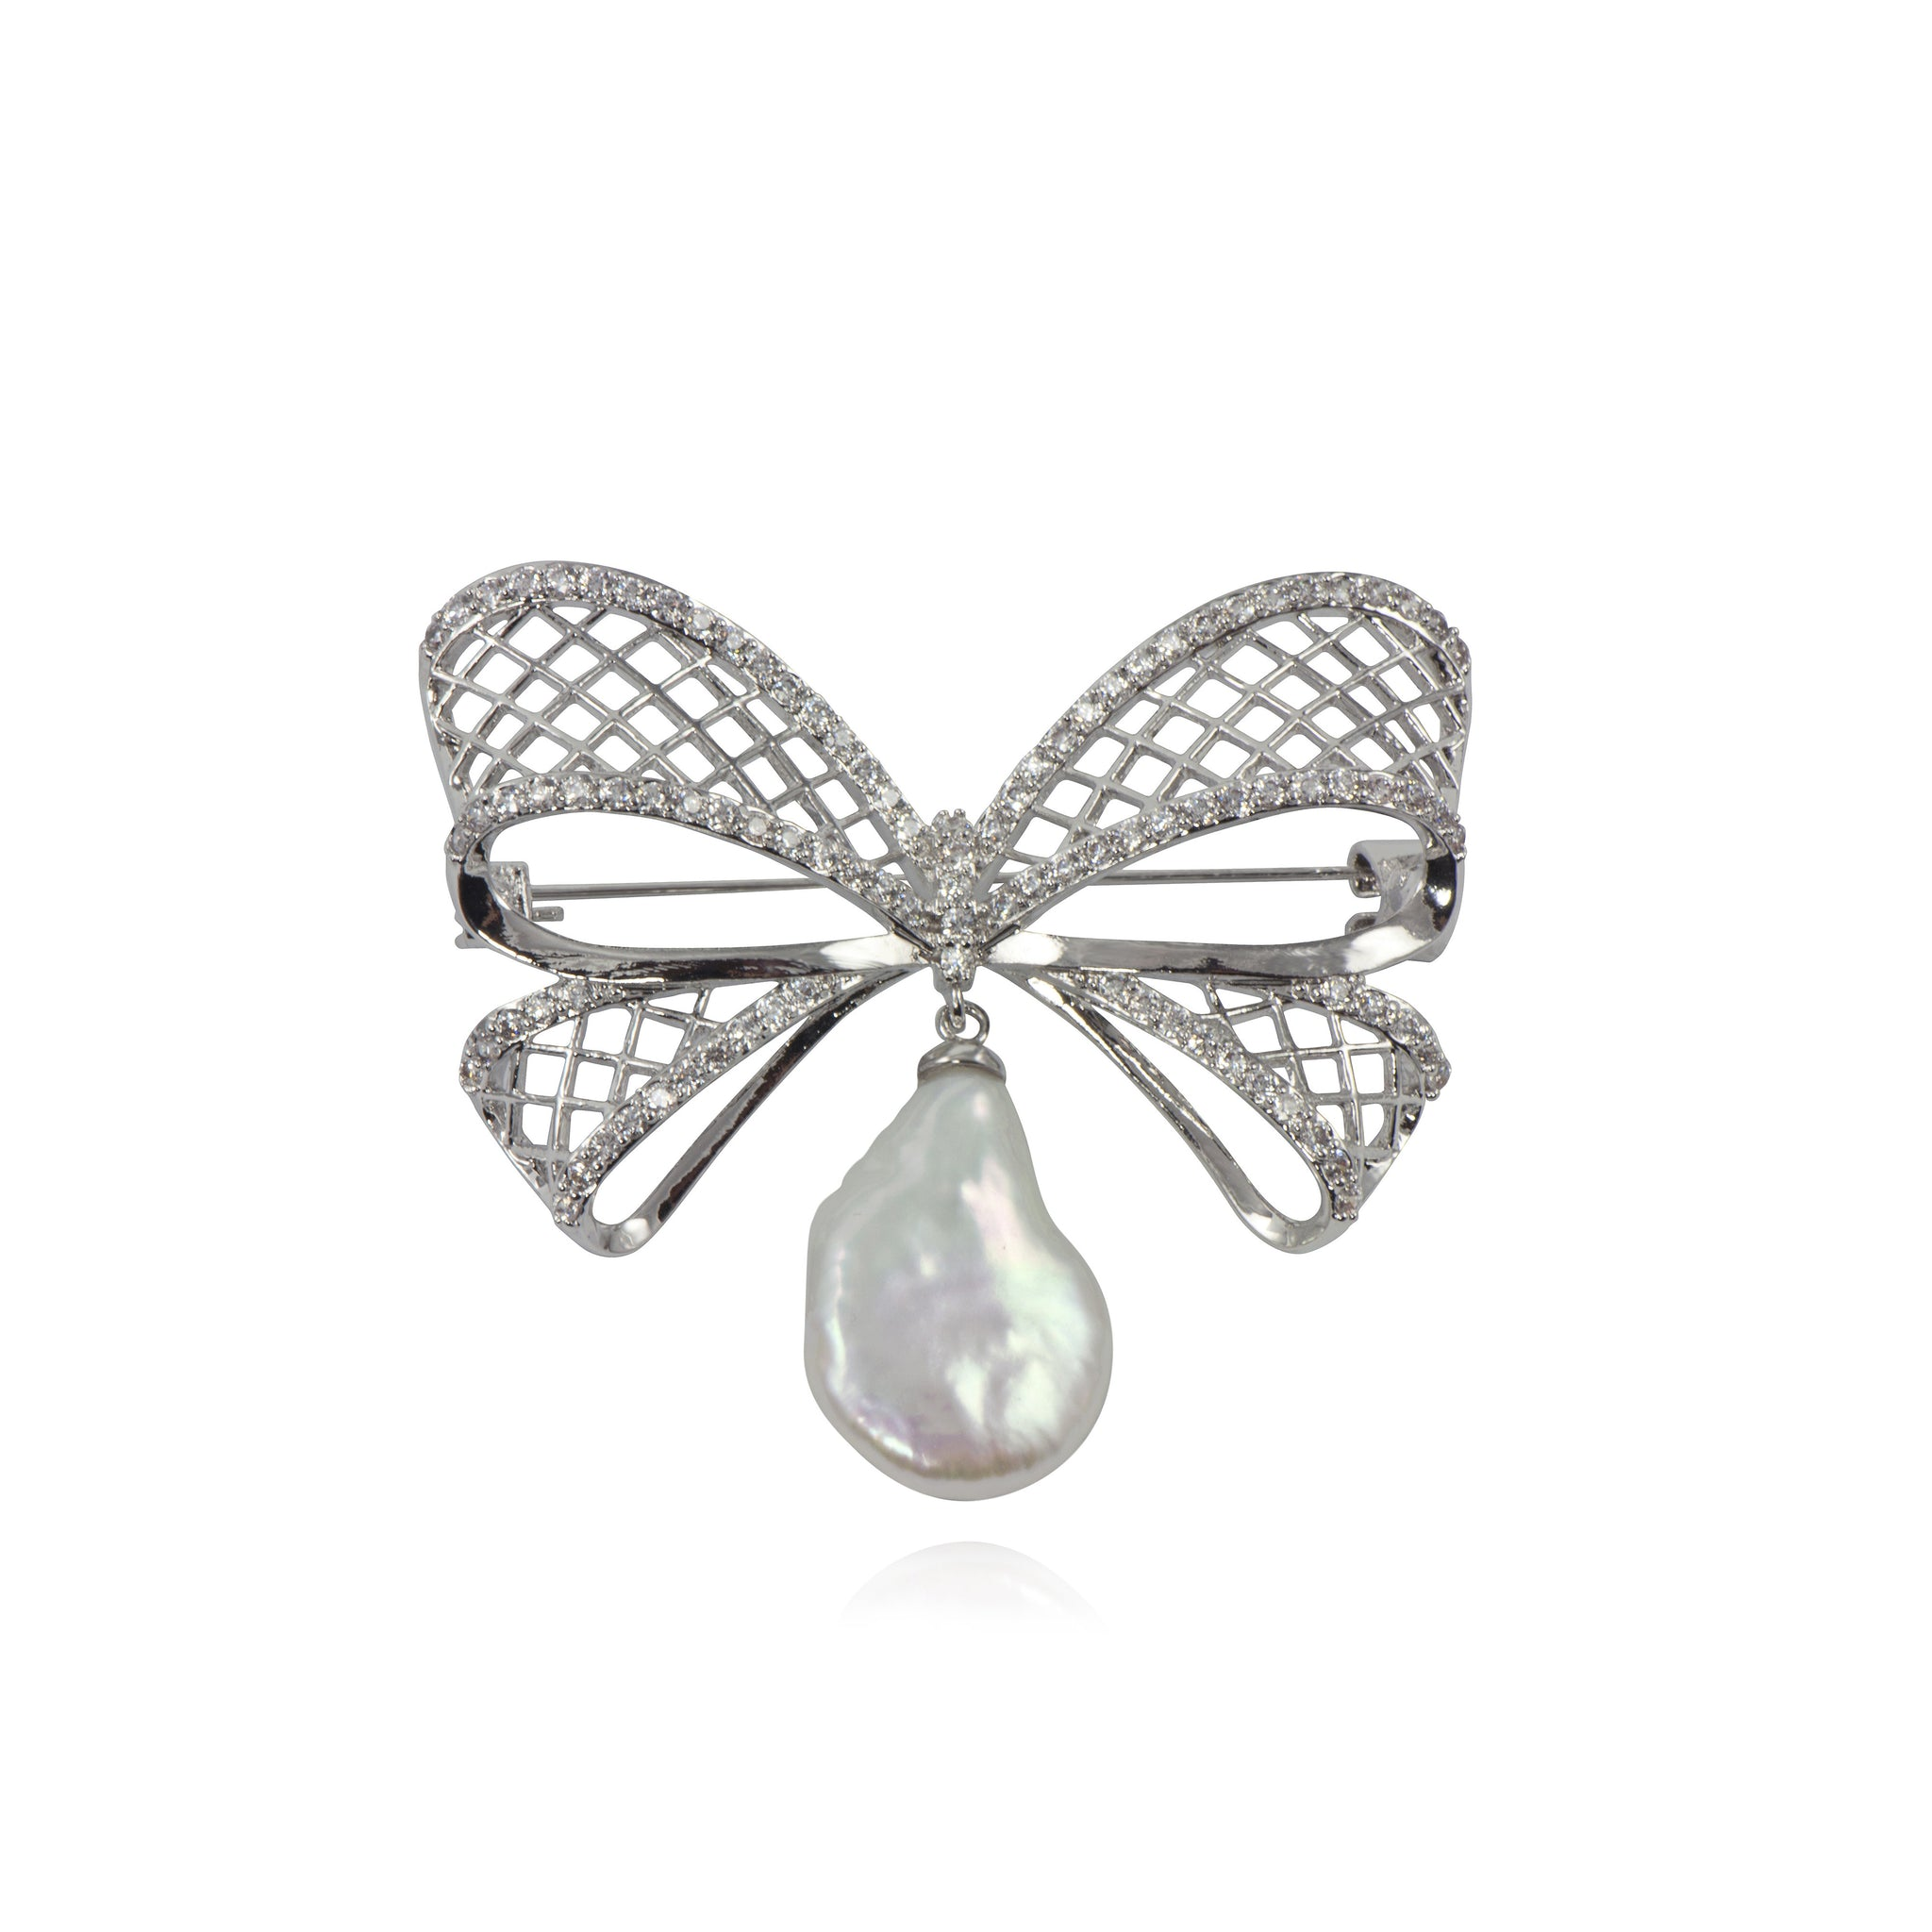 APPLES & FIGS - BUTTERFLY BAROQUE PEARL BROACH